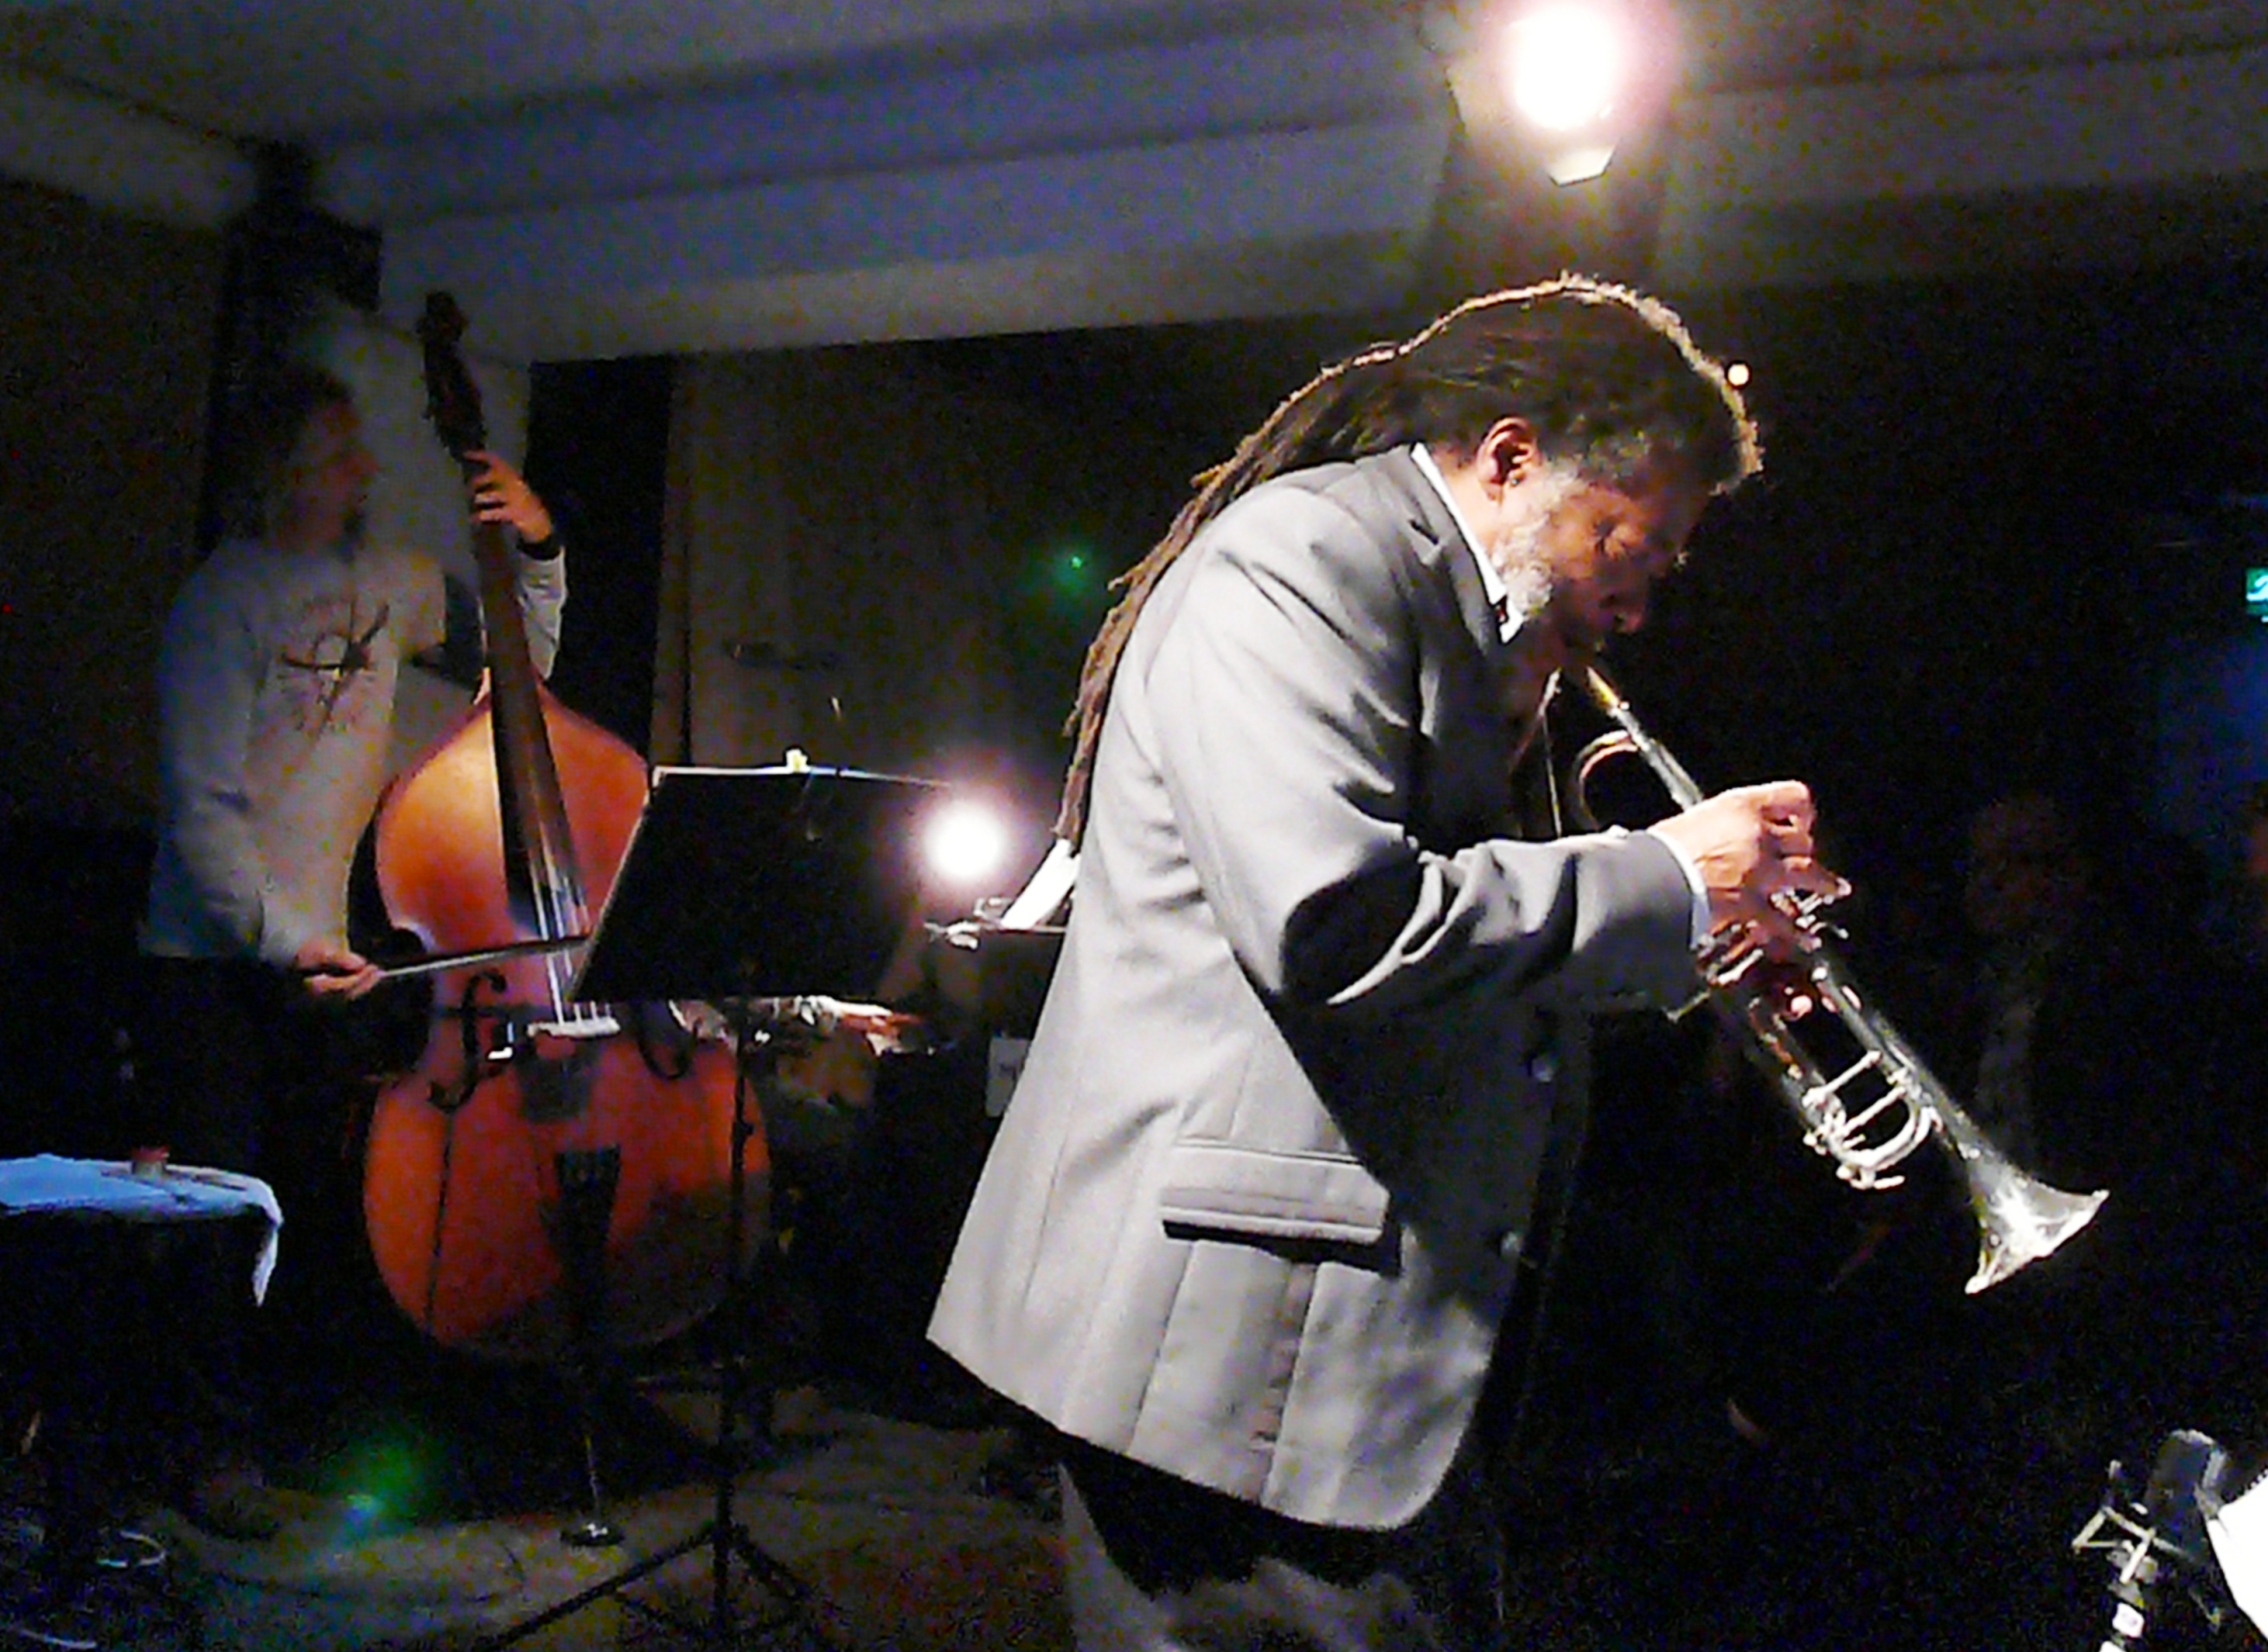 John lindberg and wadada leo smith at cafe oto as part of the london jazz festival in november 2013